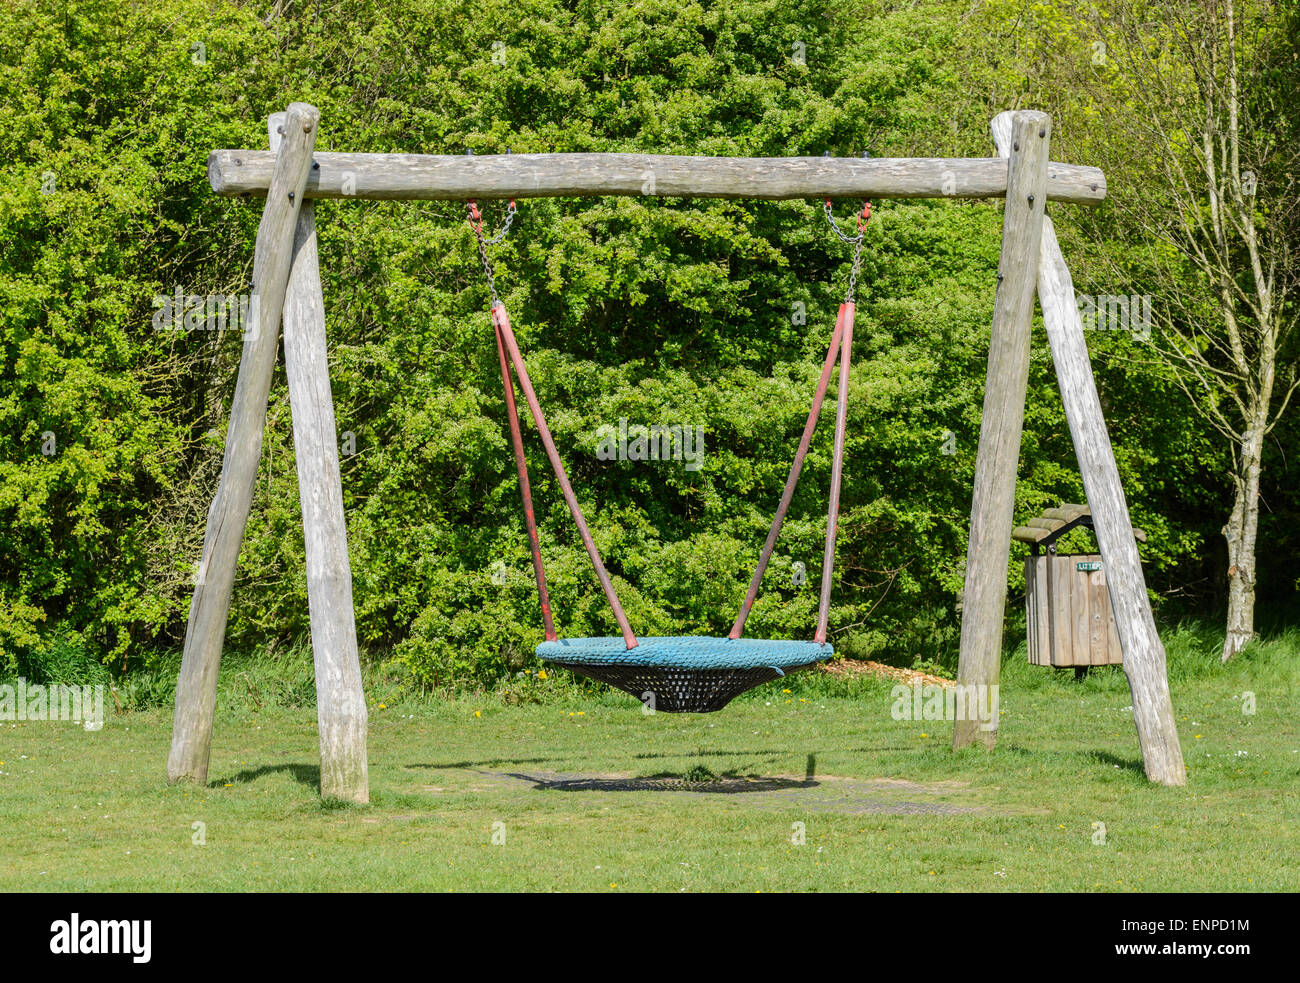 Modern swing with a wooden frame in a park. - Stock Image